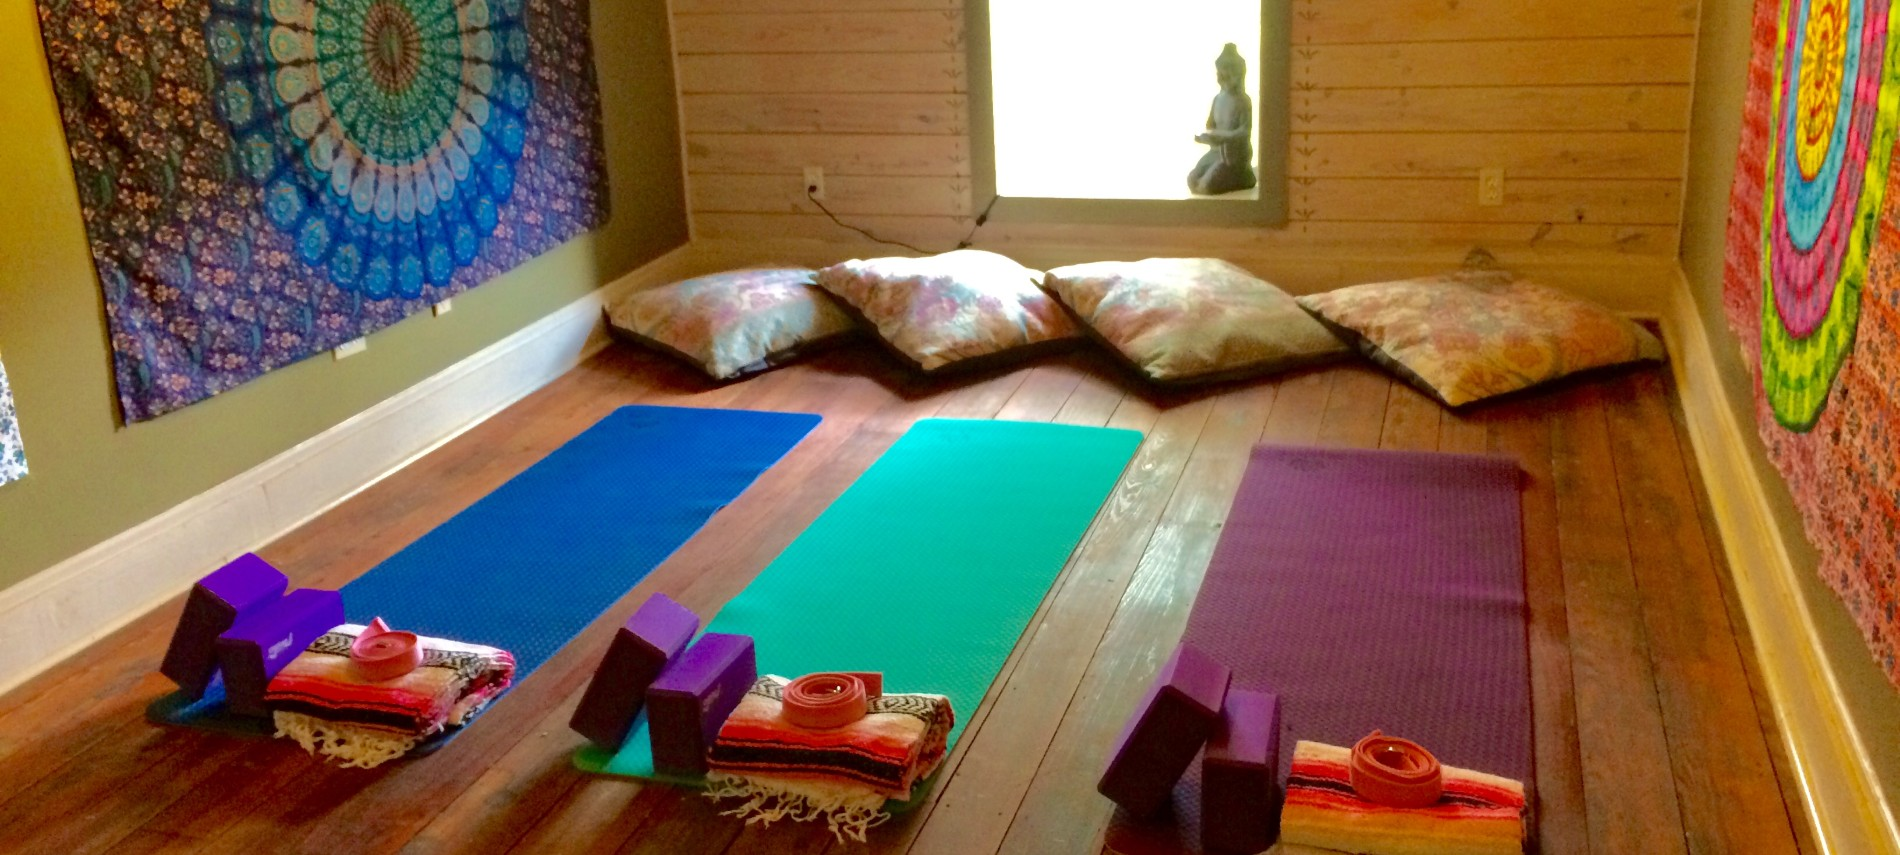 the yoga studio with mats